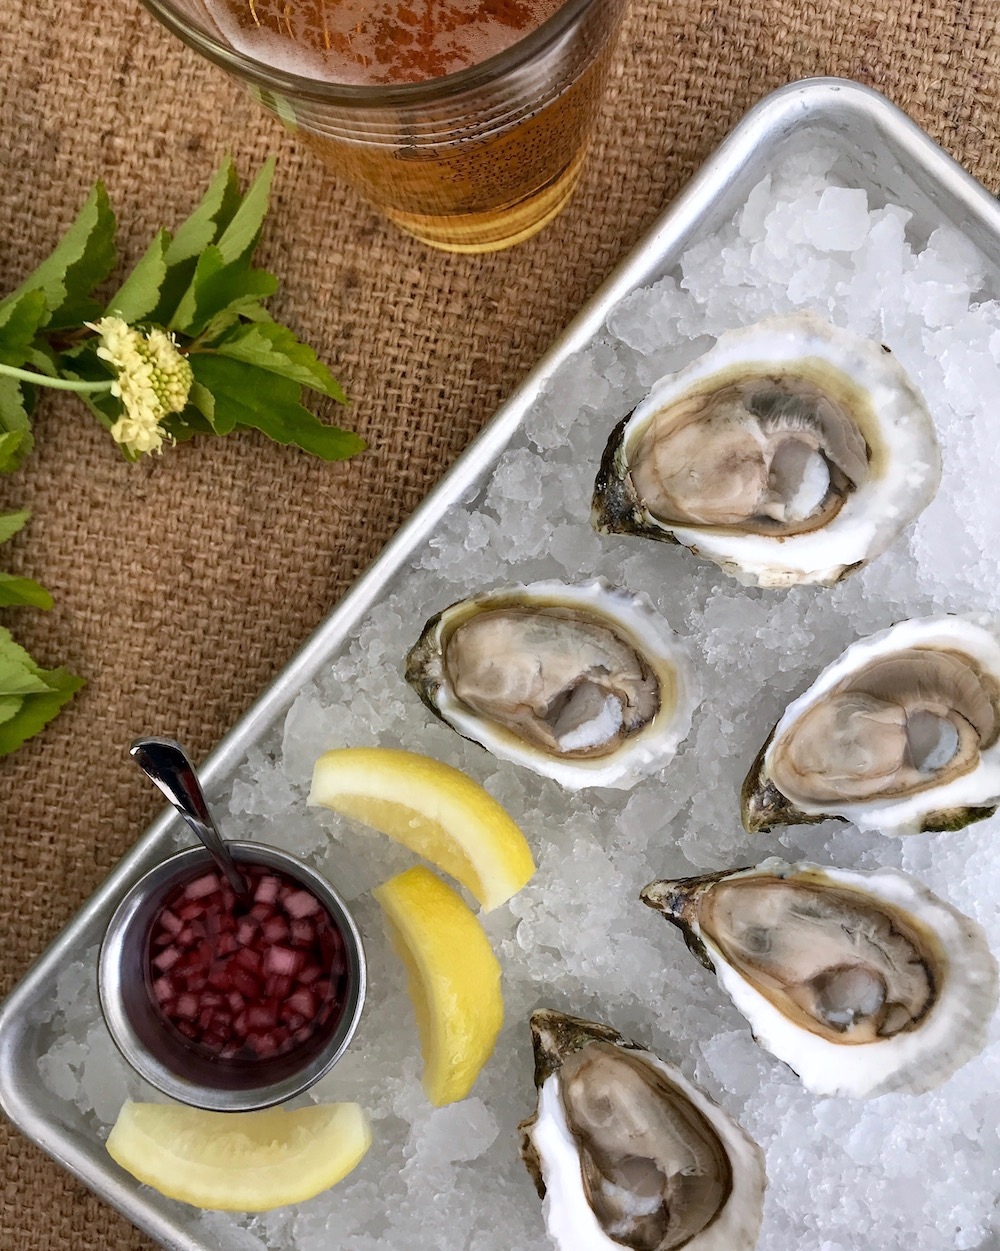 A selection of North Carolina oysters served on the half shell with house mignonette.